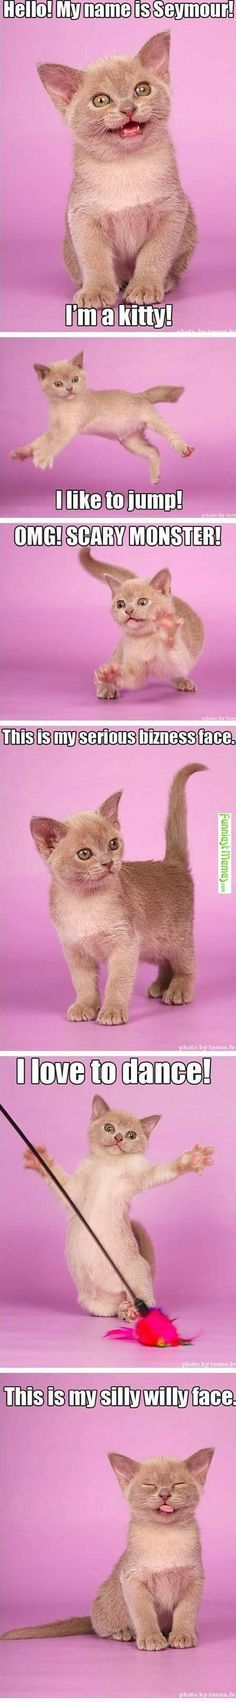 This is Seymour the kitten, and he loves to play, jump and nap! Such a silly kitty! funny - cat - memes